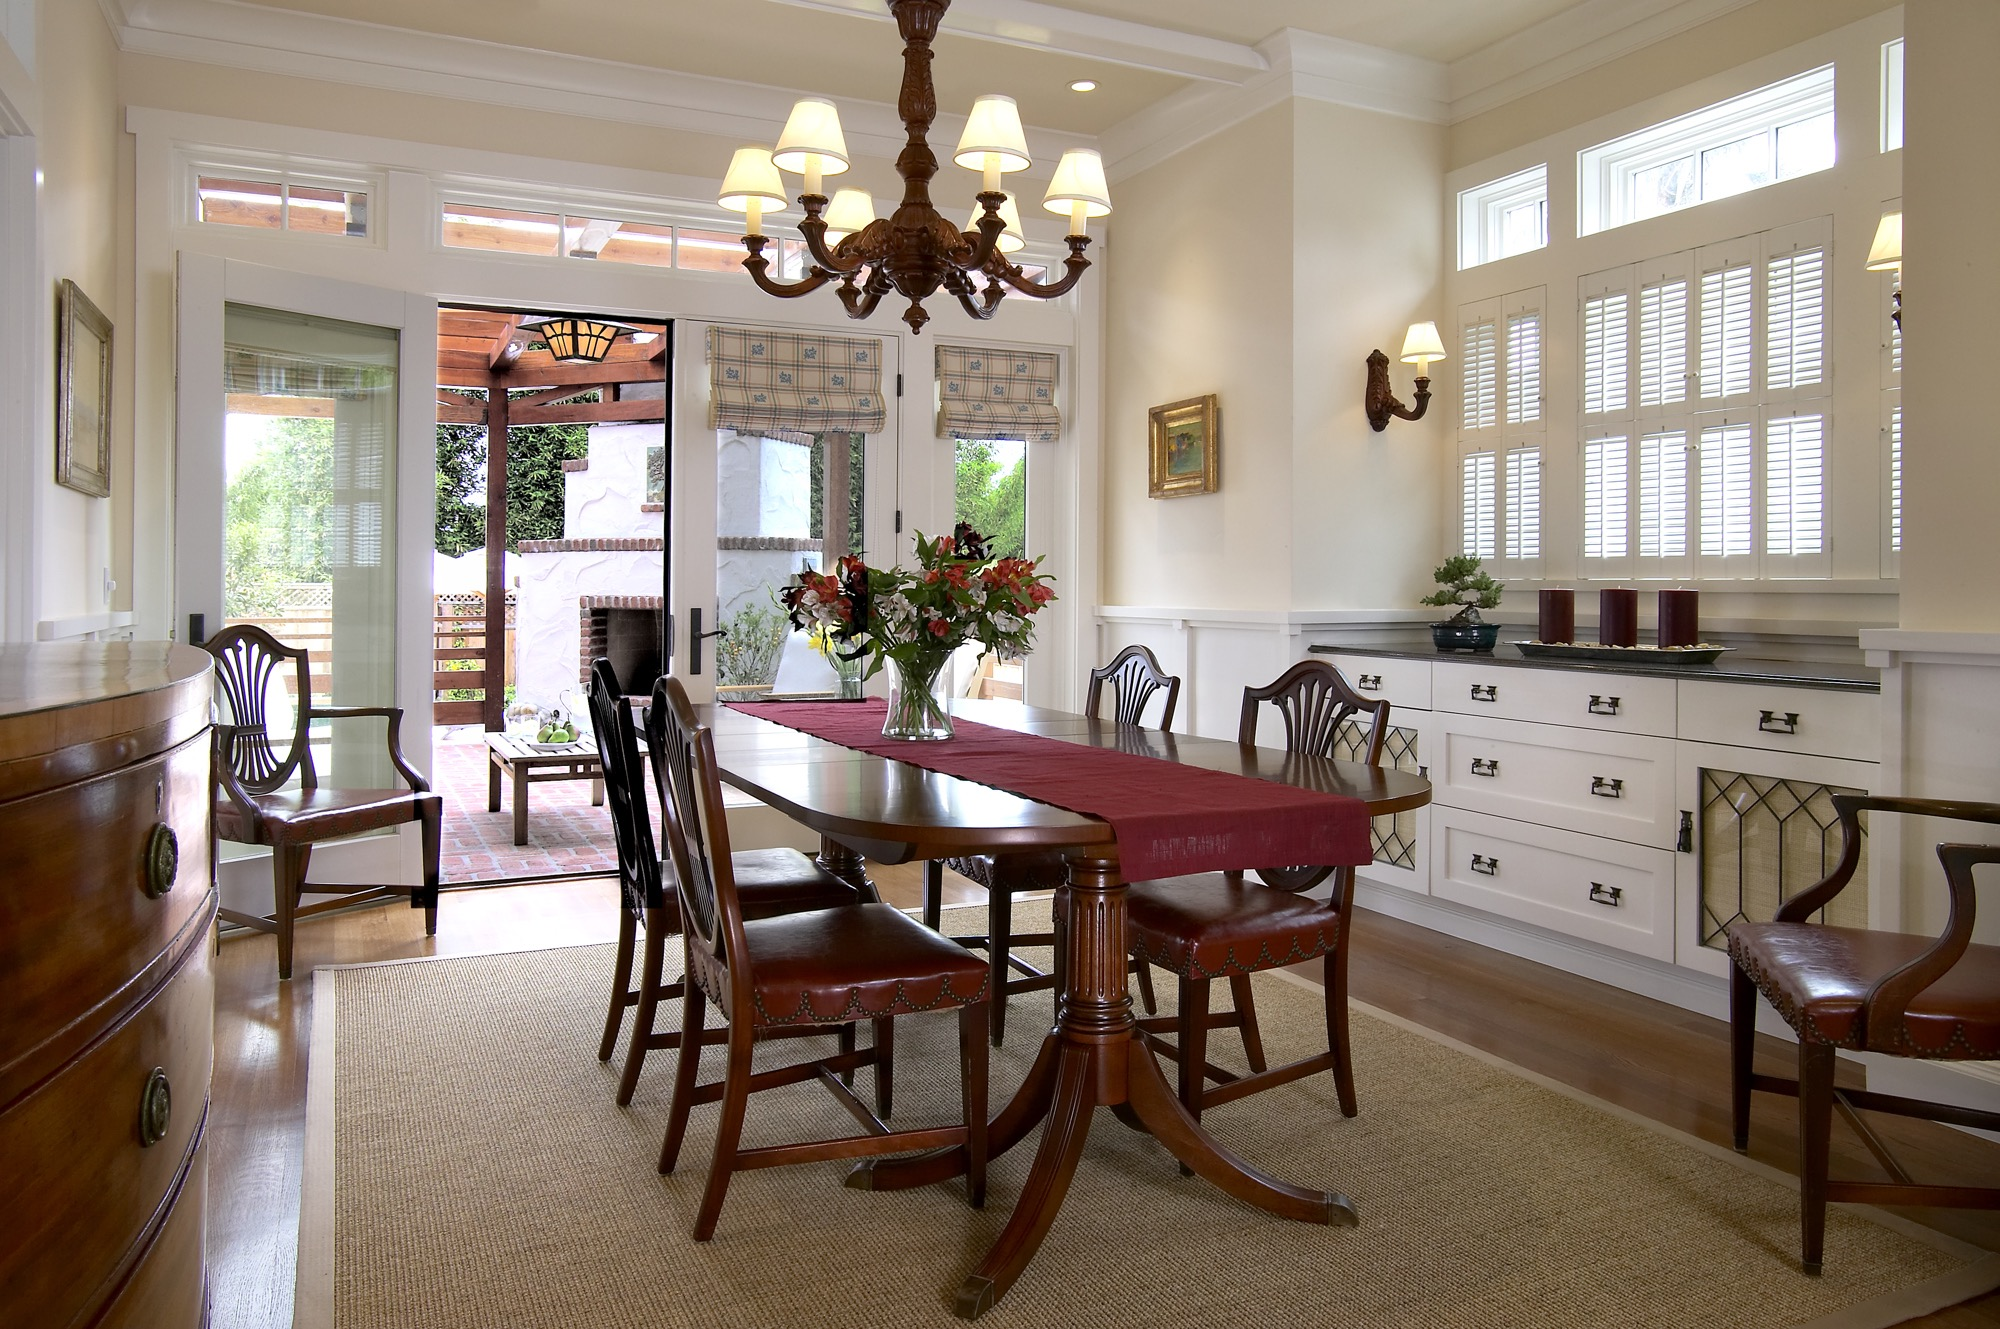 Classic Wooden Dining Room Table And Chairs Furniture (Image 7 of 25)